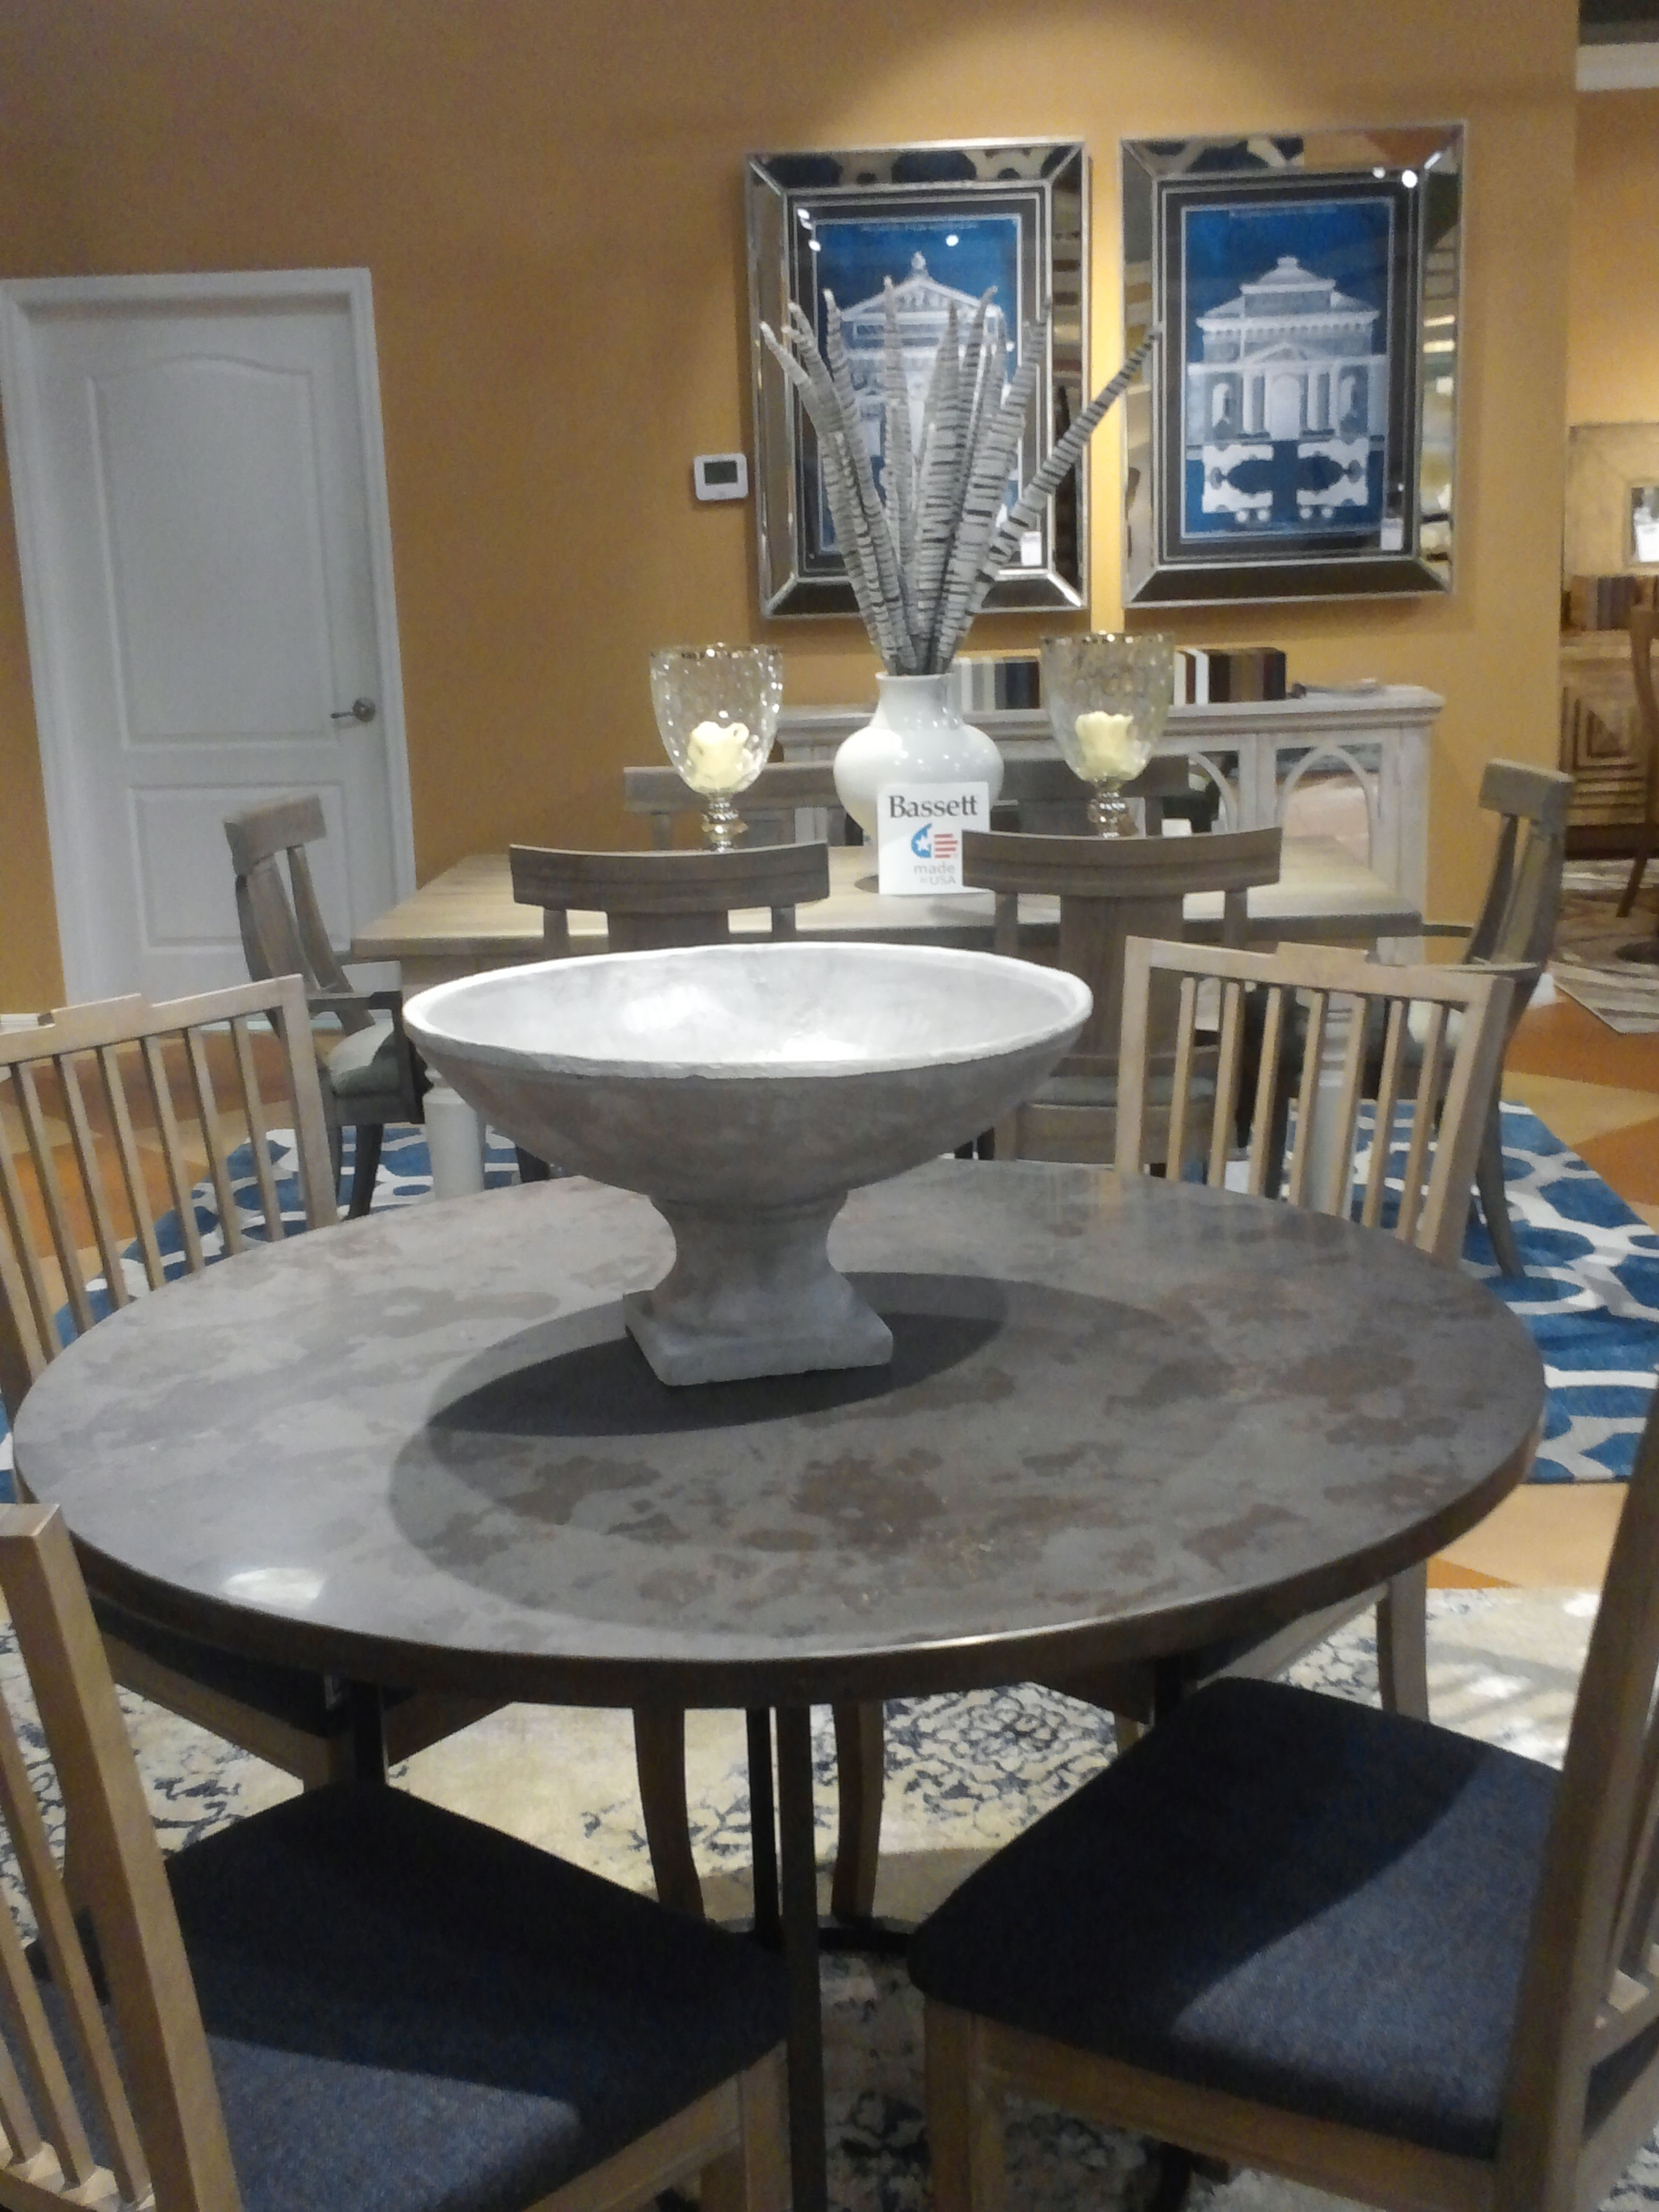 Blue stone table bassett custom gallery bassett custom bench blue stone table bassett custom gallery dzzzfo